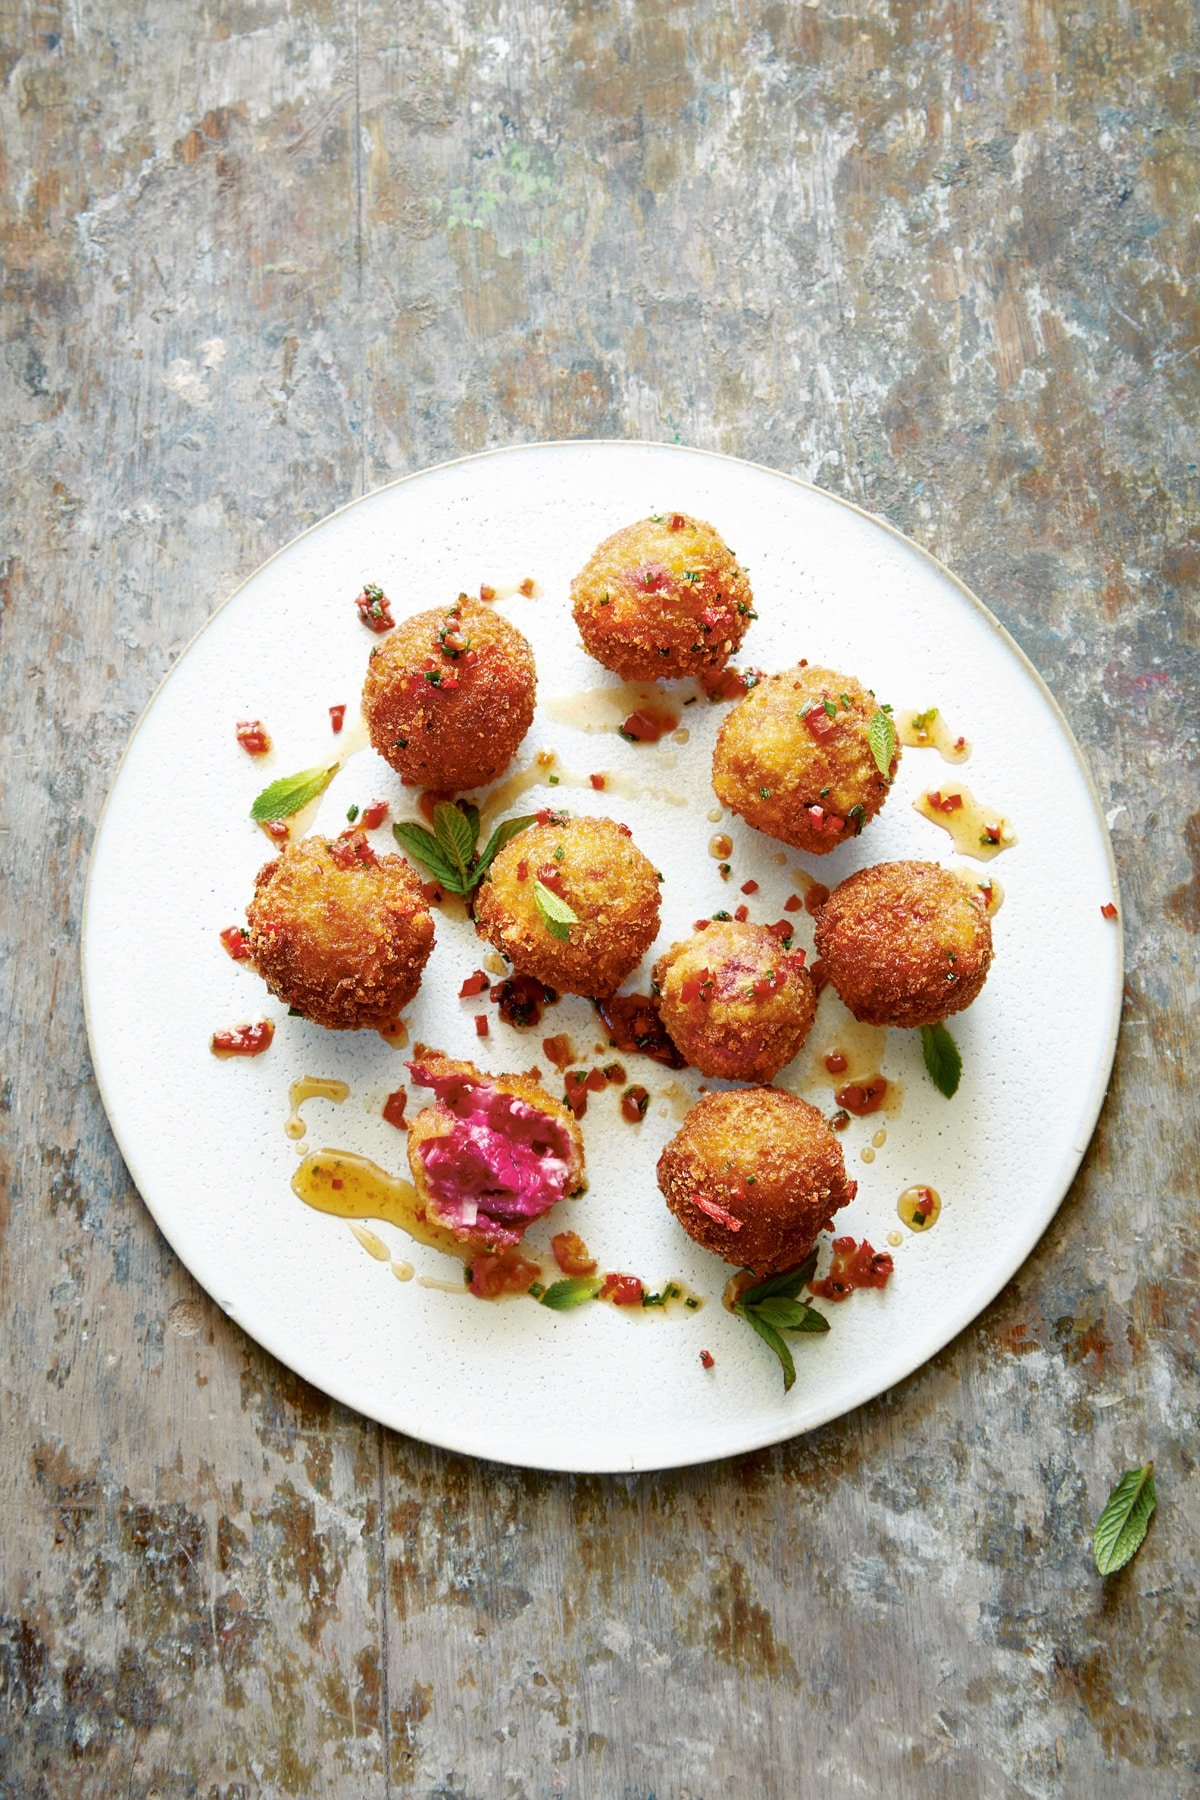 Goat's cheese croquettes on a large white plate. They have been dressed with maple syrup, red chilli, chives and mint.